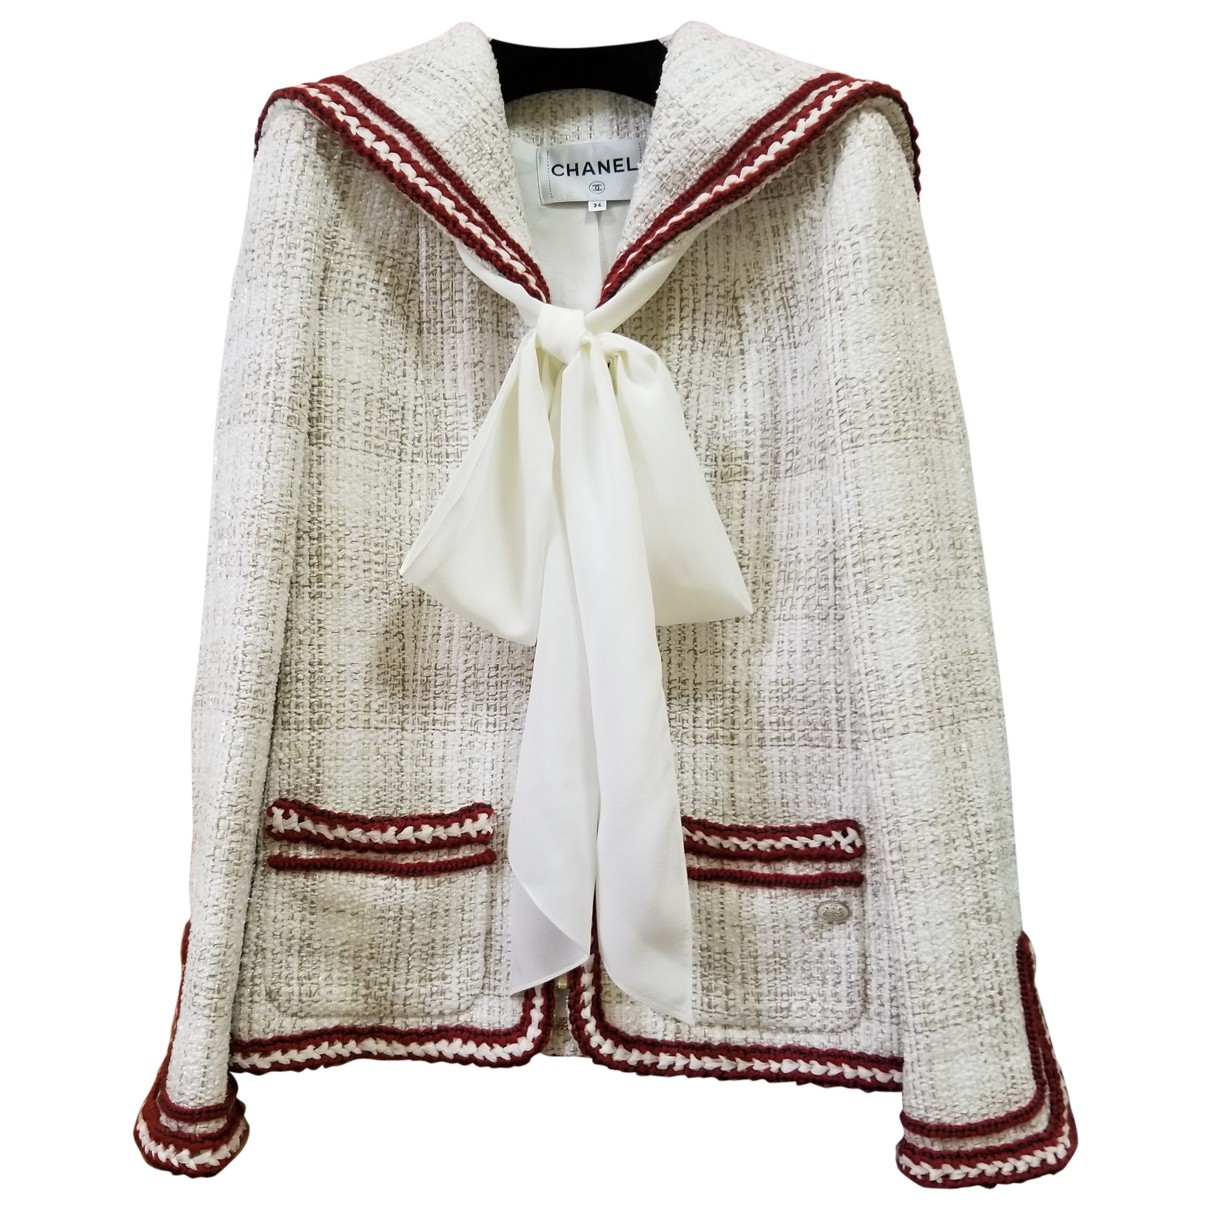 Chanel \N White Cashmere jacket for Women 34 FR